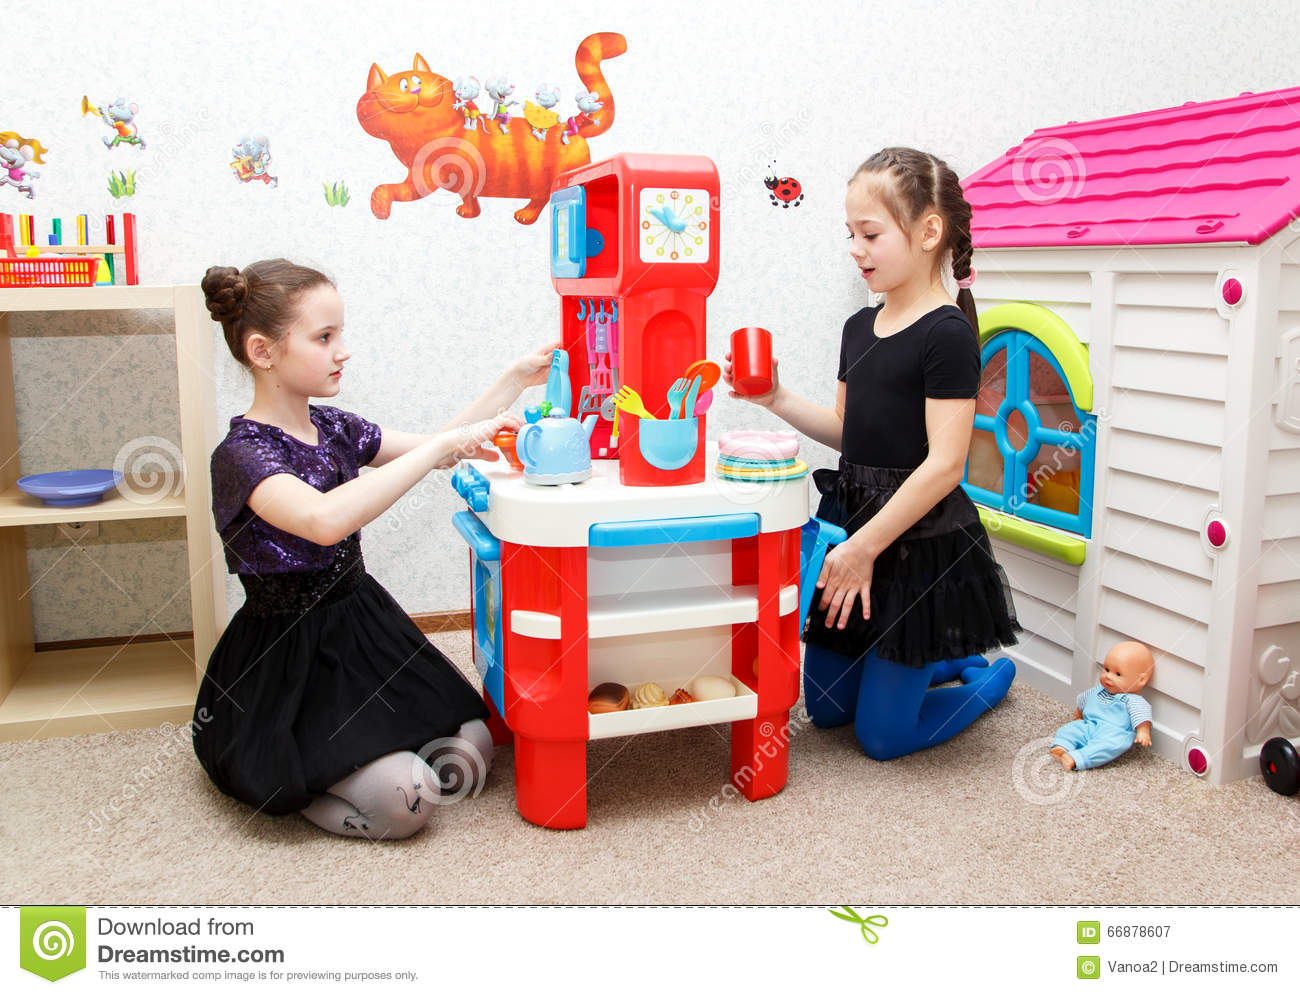 Toys For Day Care Centers : Two little girls play role game with toy kitchen in day